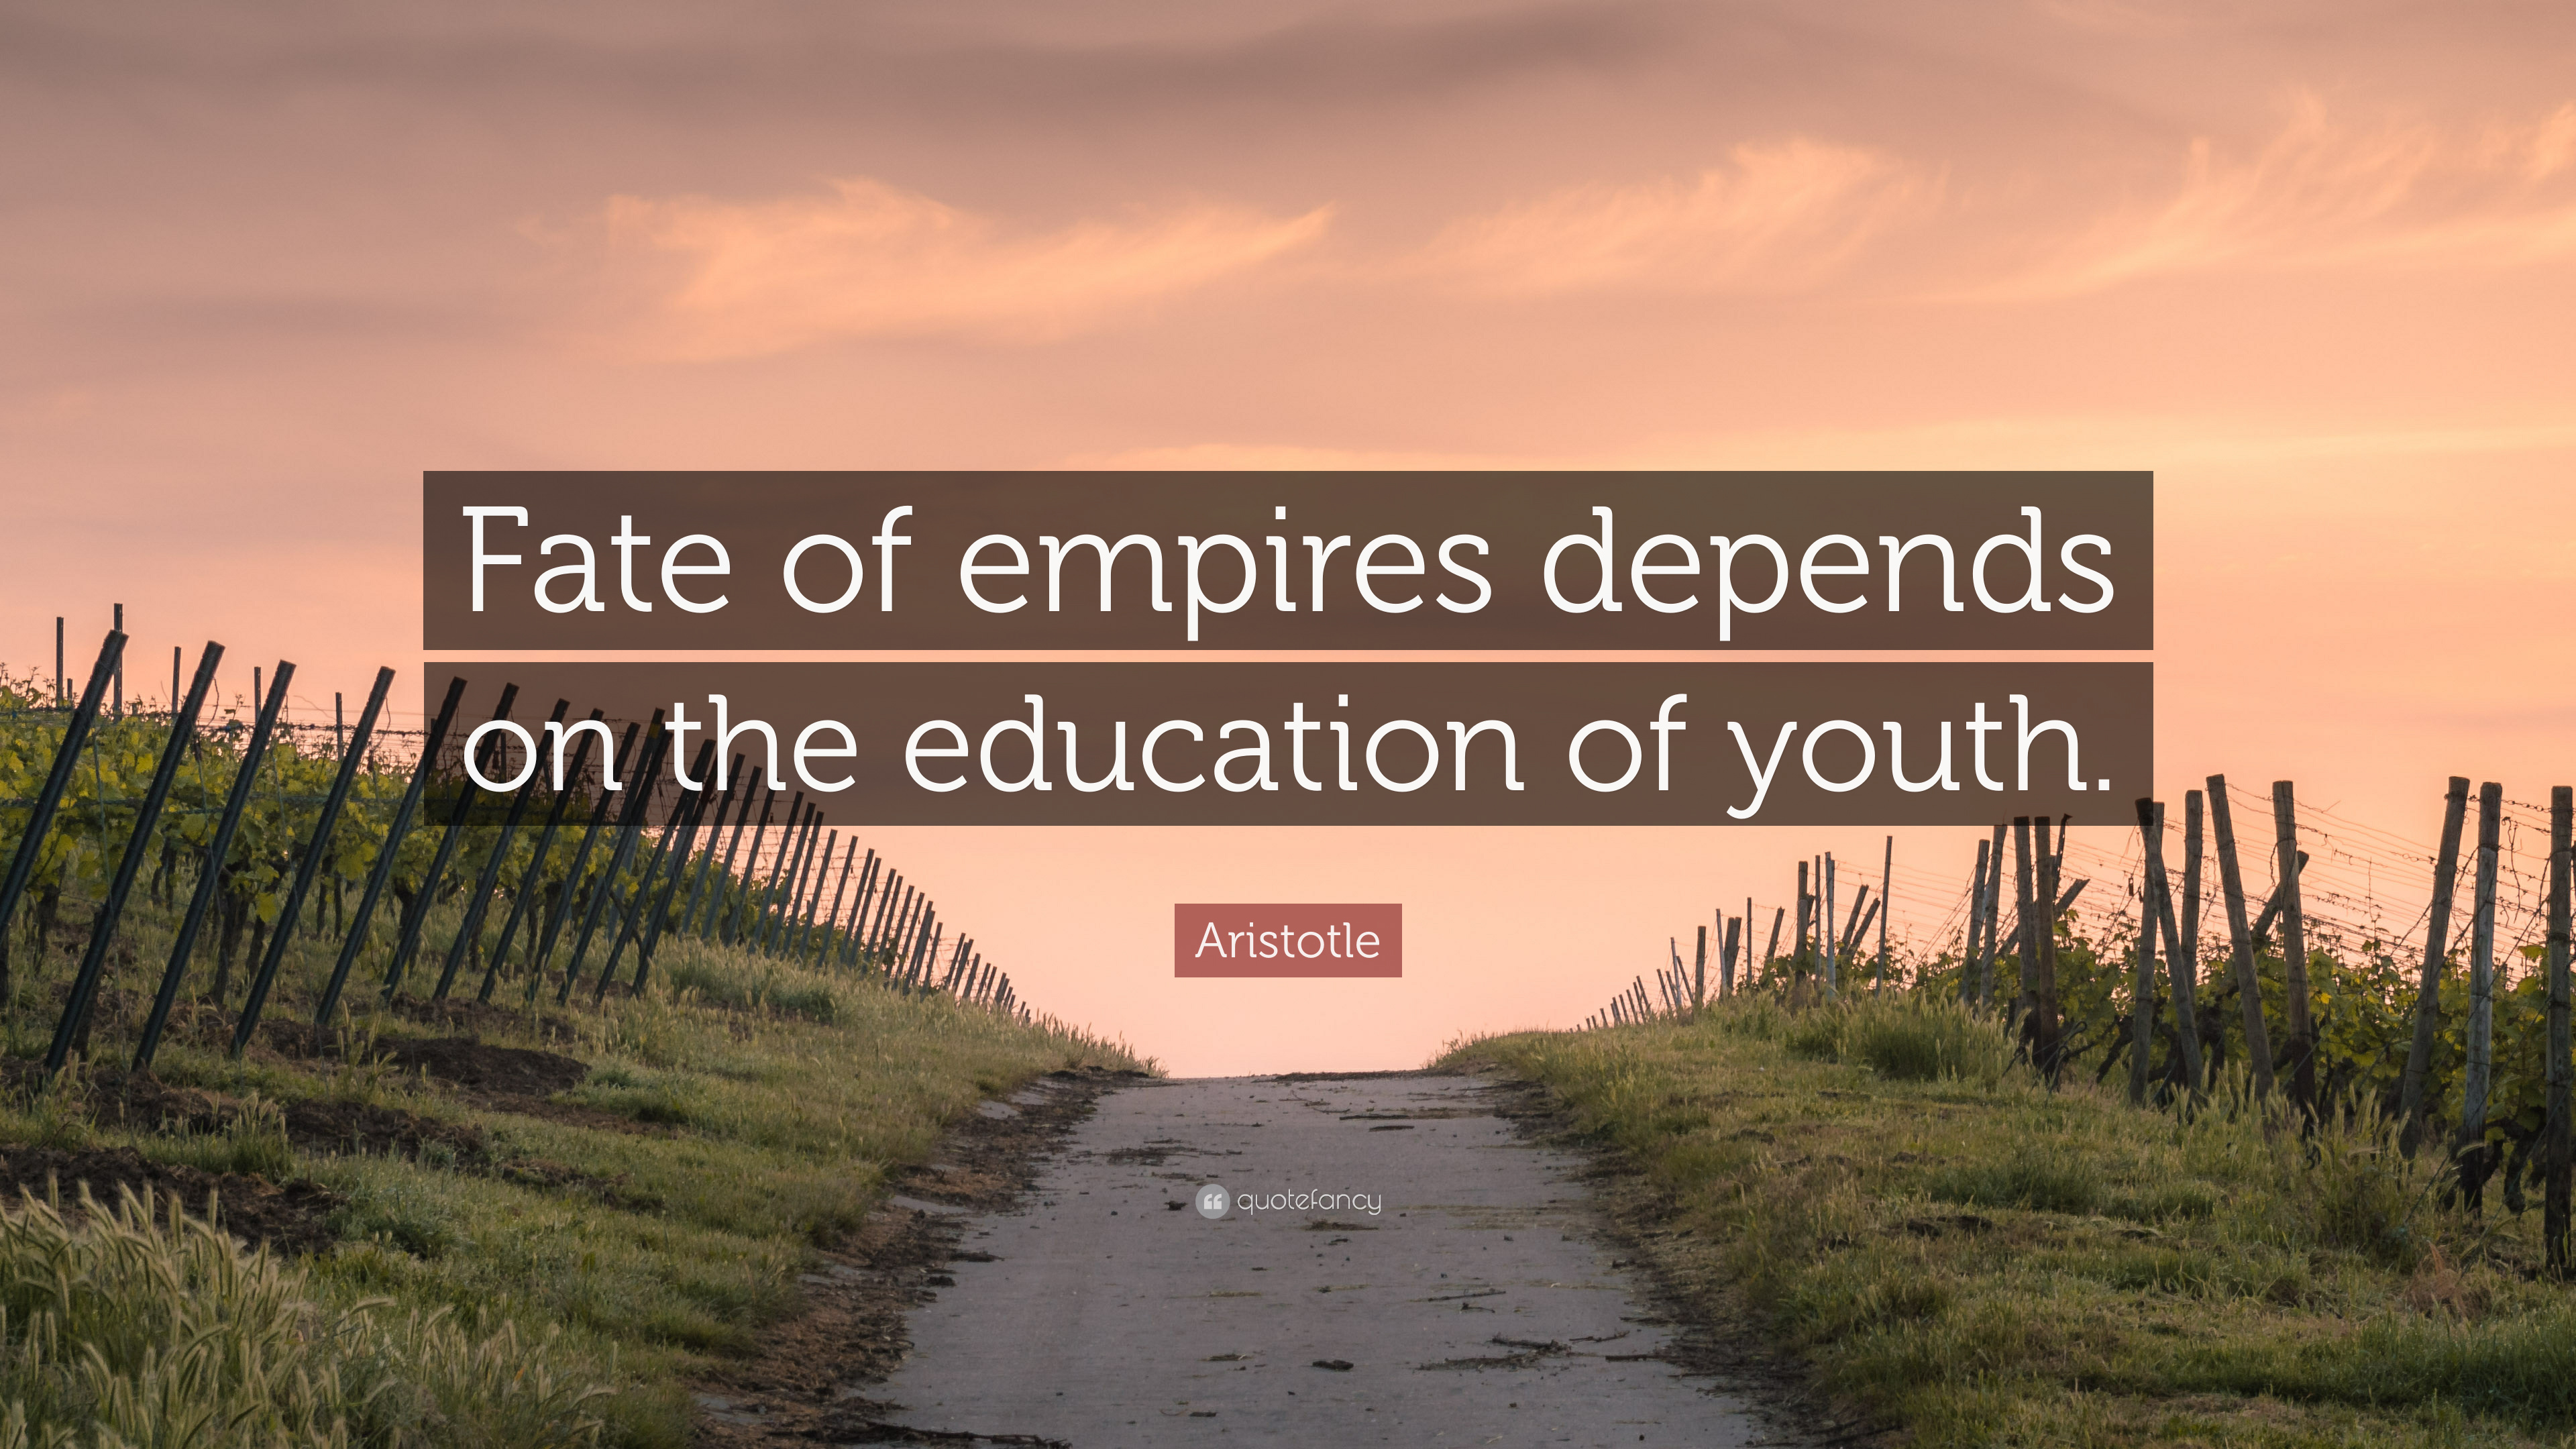 aristotle quote about youth